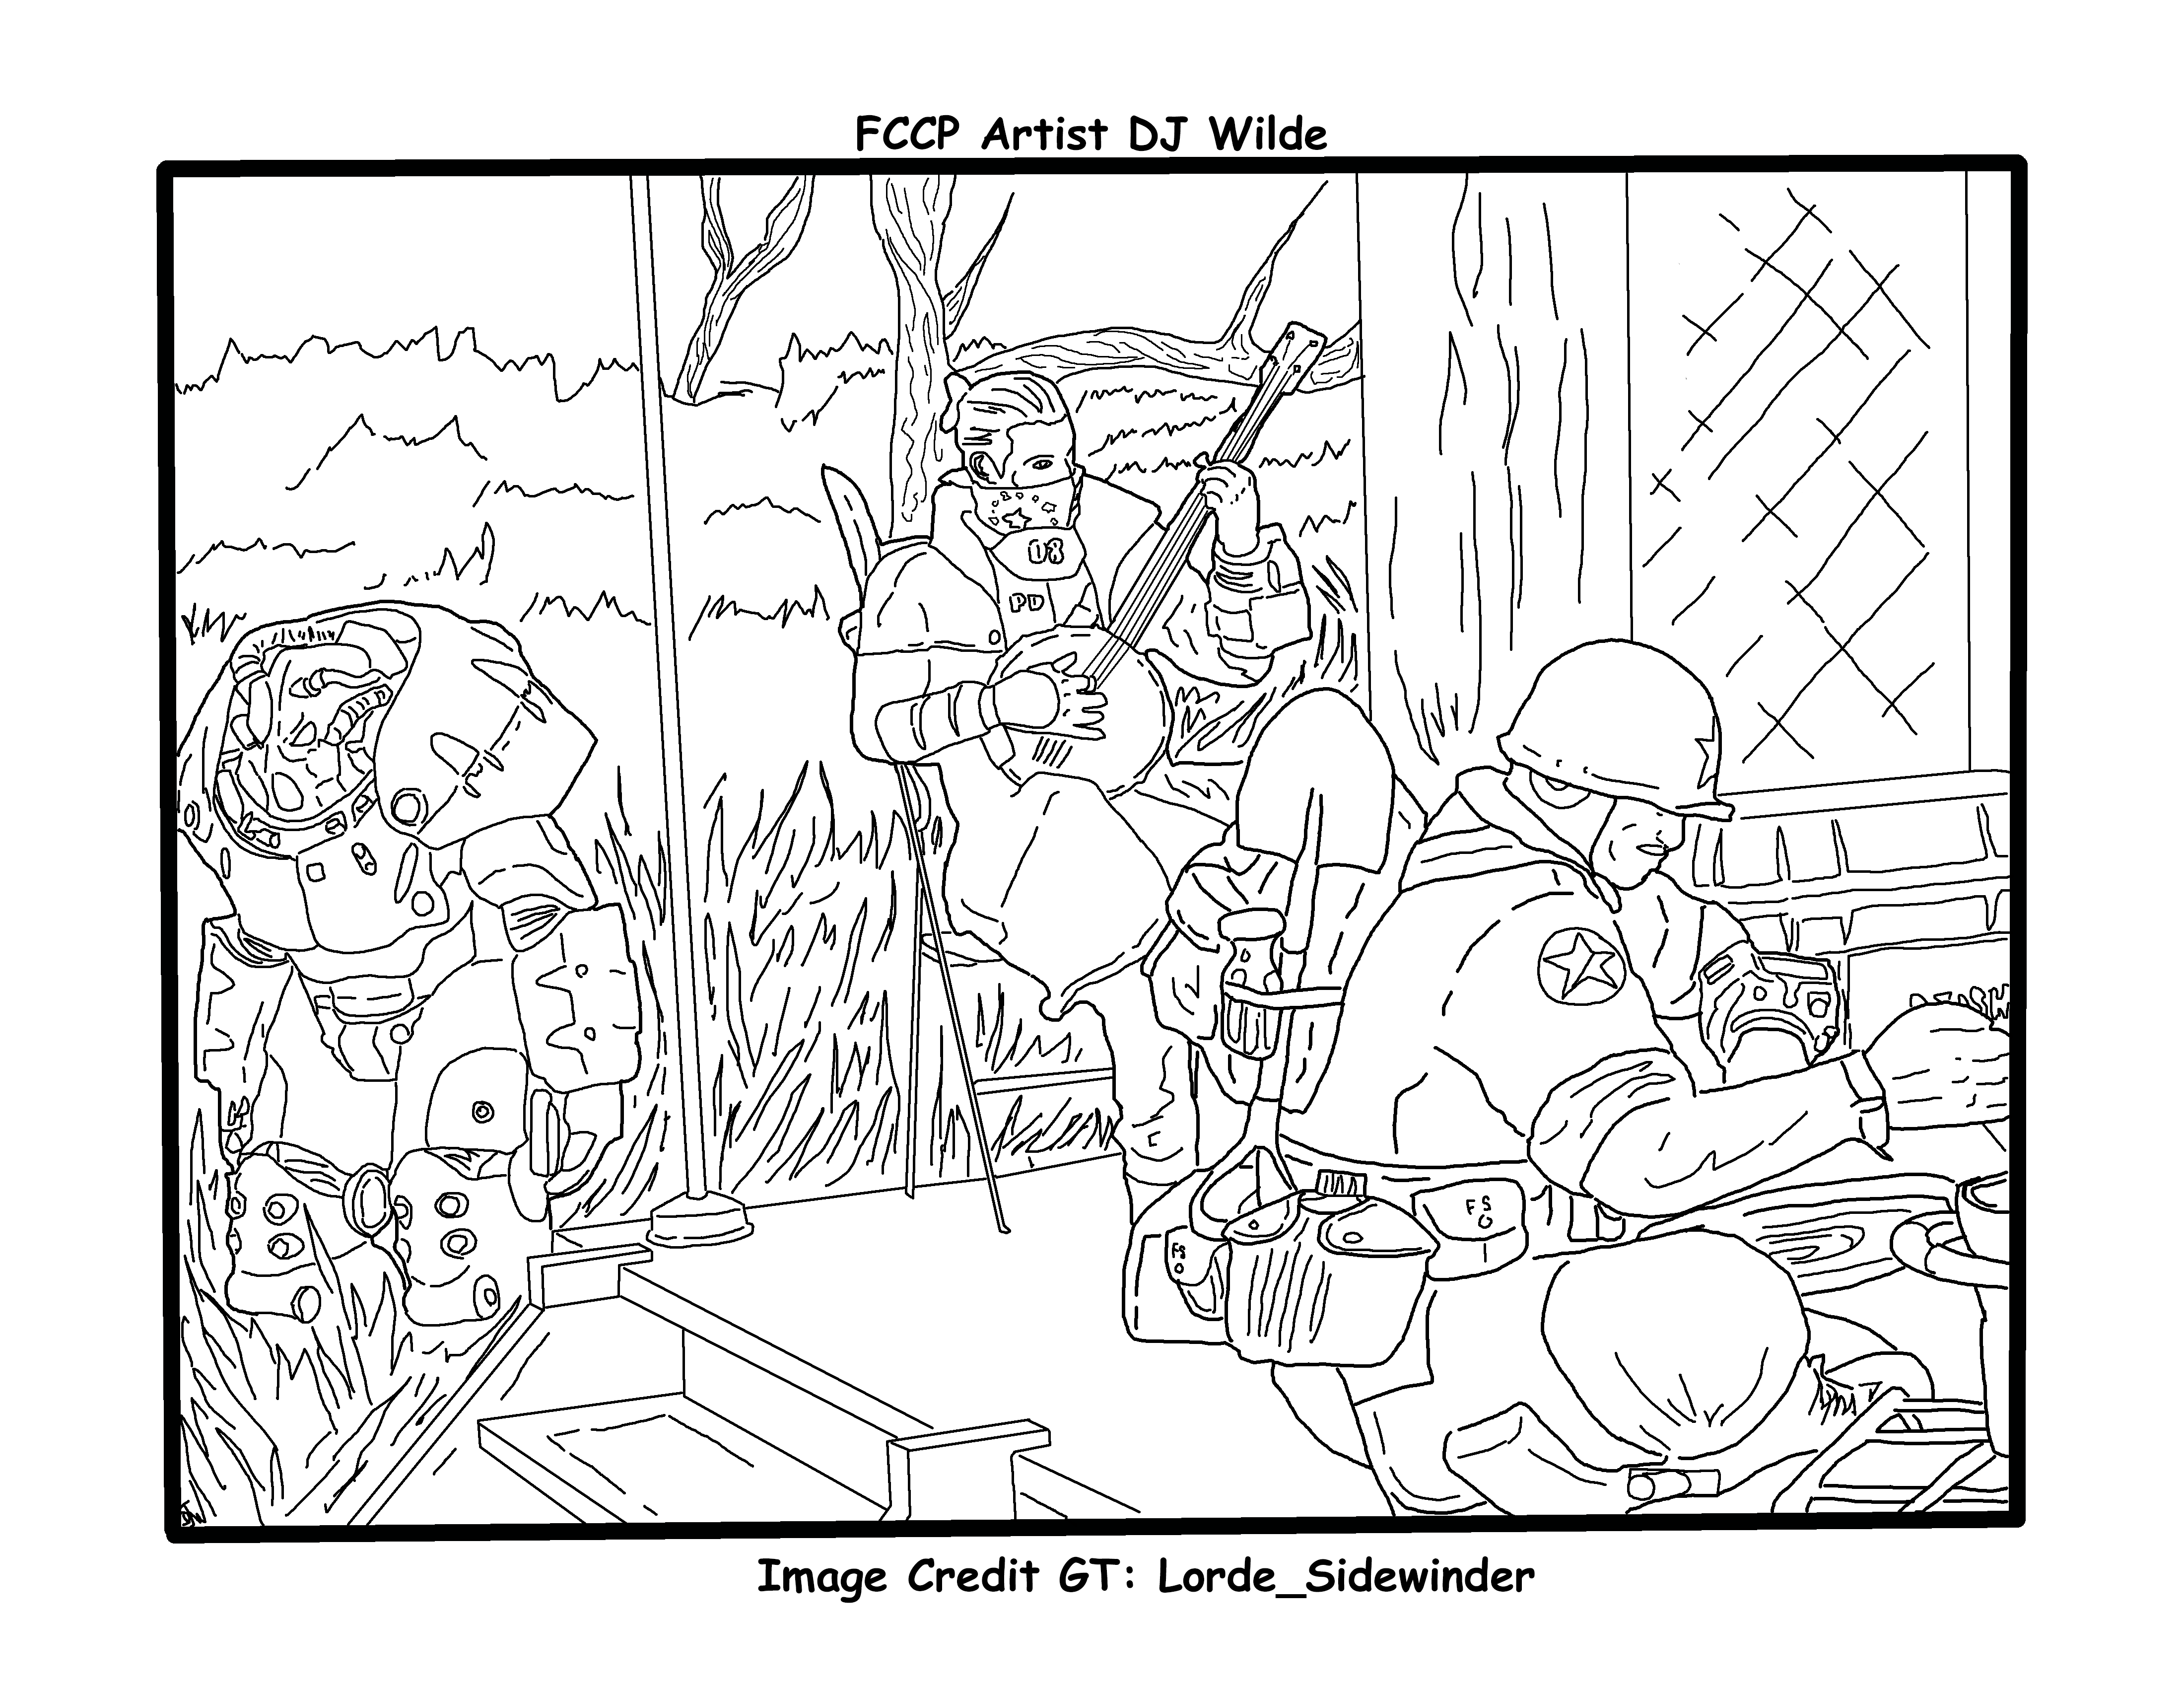 Fallout 76 Camp Life coloring page in 2020 | Coloring ...